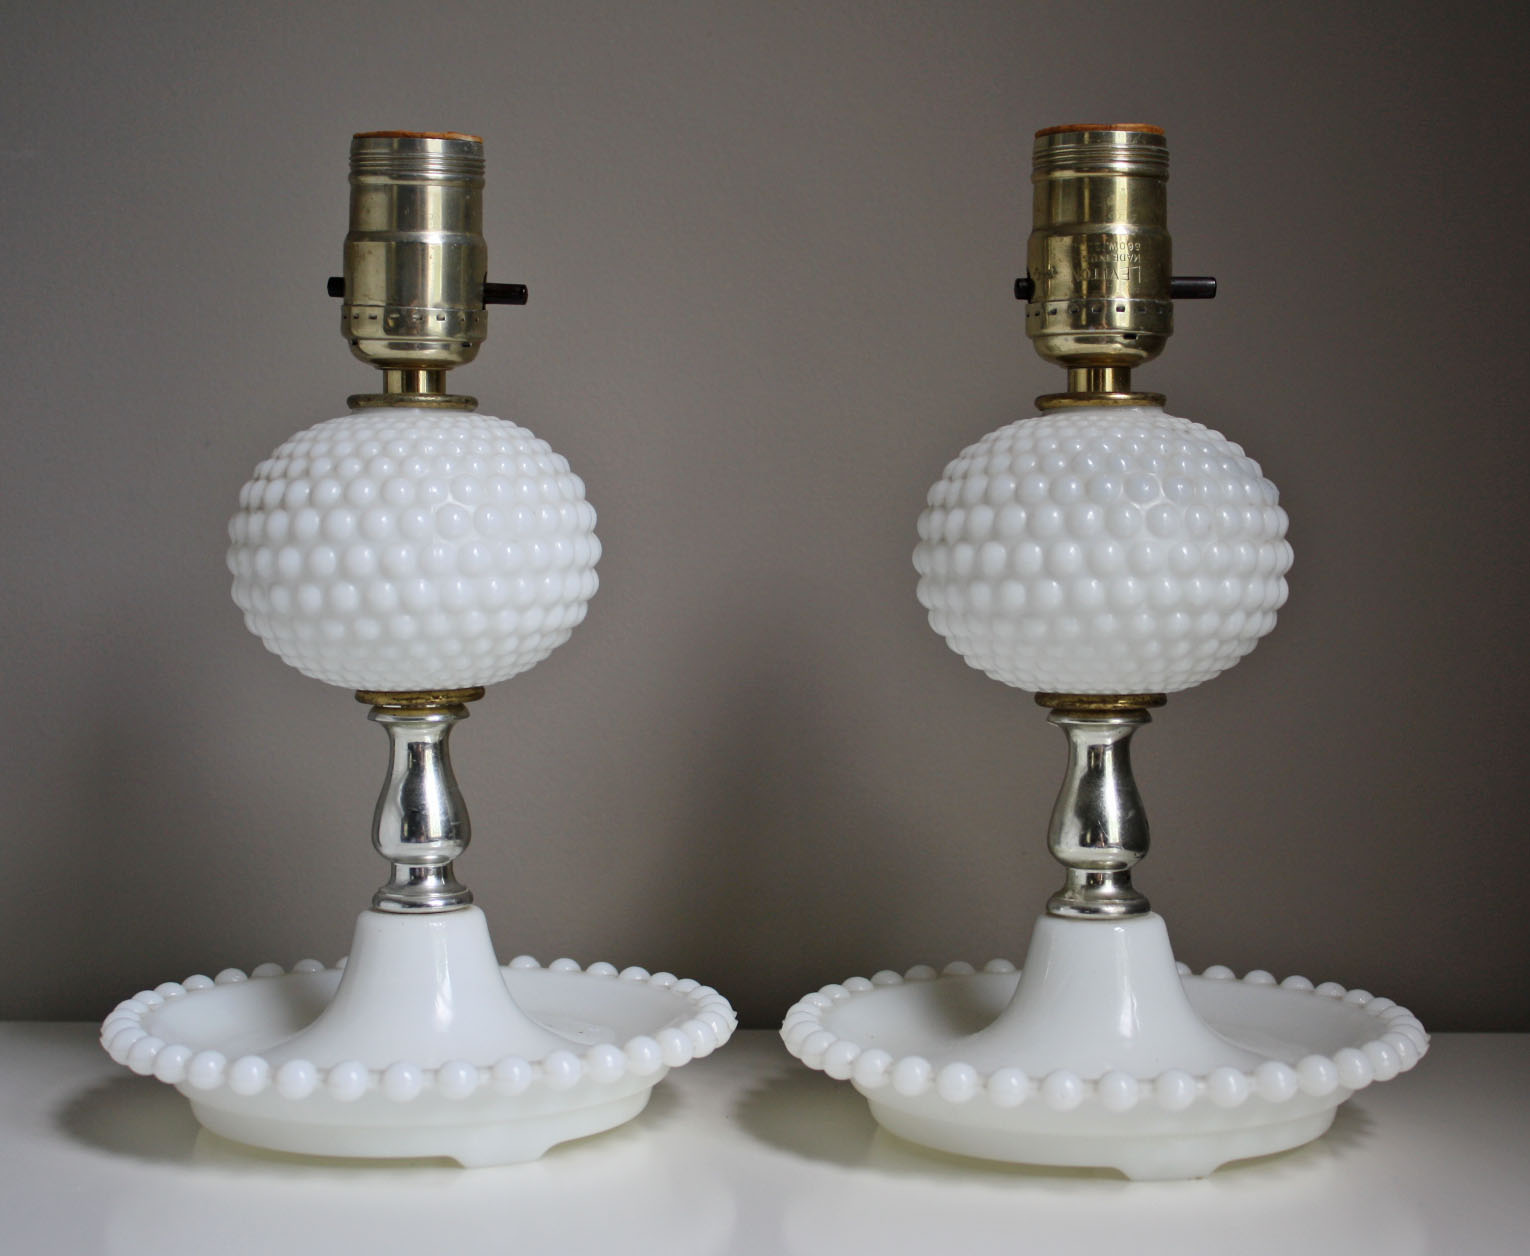 milk glass lamps photo - 1